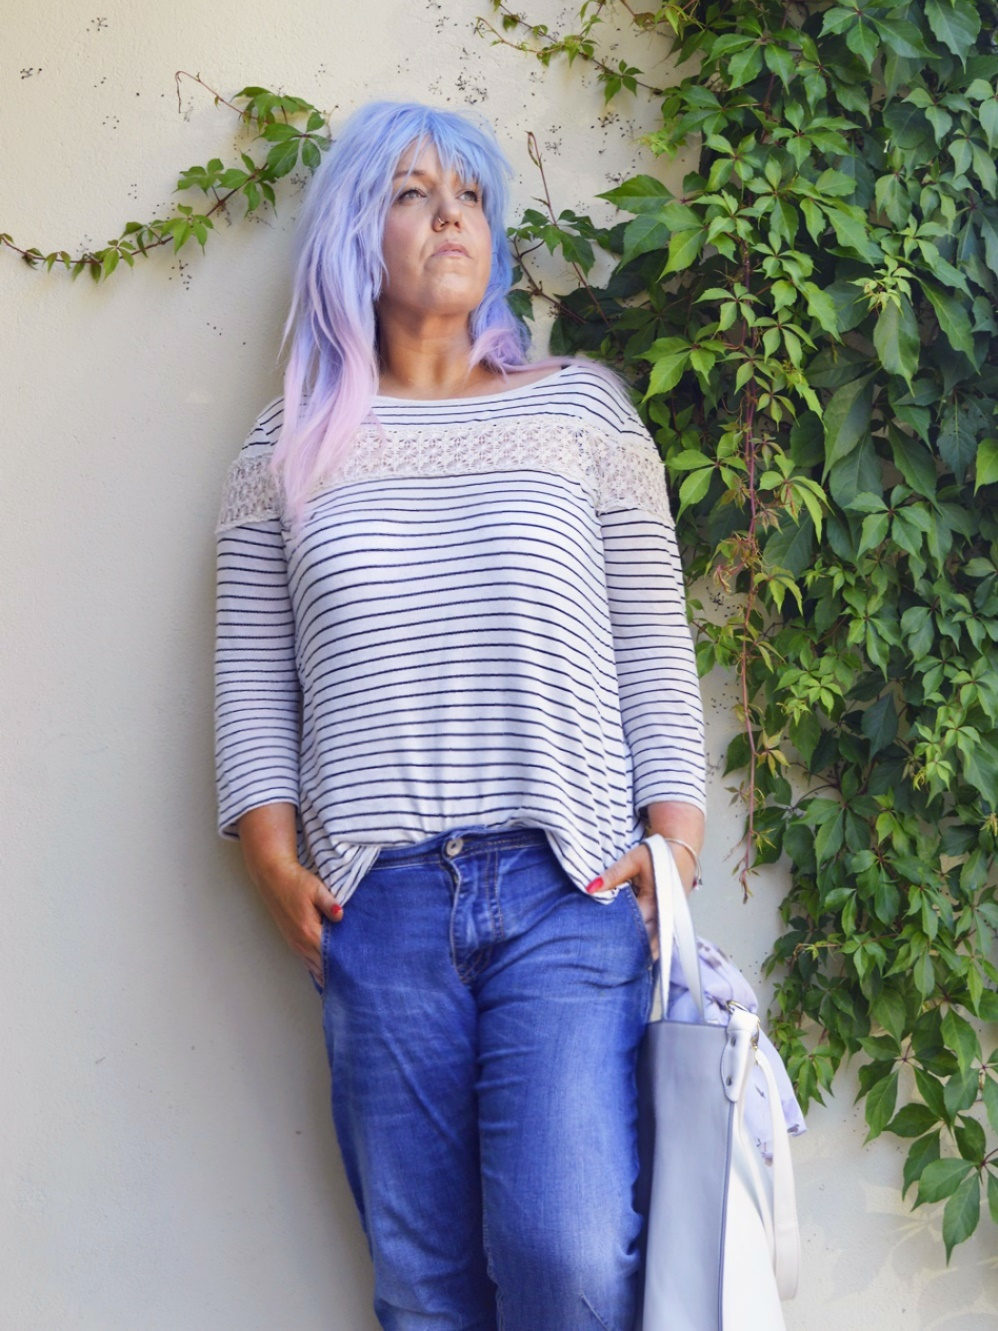 Striped Shirt with lace -  Summer Outfit with Baggy Boyfriend Jeans, striped shirt with lace  and white Leather mules,  posted by Annie K, Fashion and Lifestyle Blogger, Founder, CEO and writer of ANNIES BEAUTY HOUSE - a german fashion and beauty blog